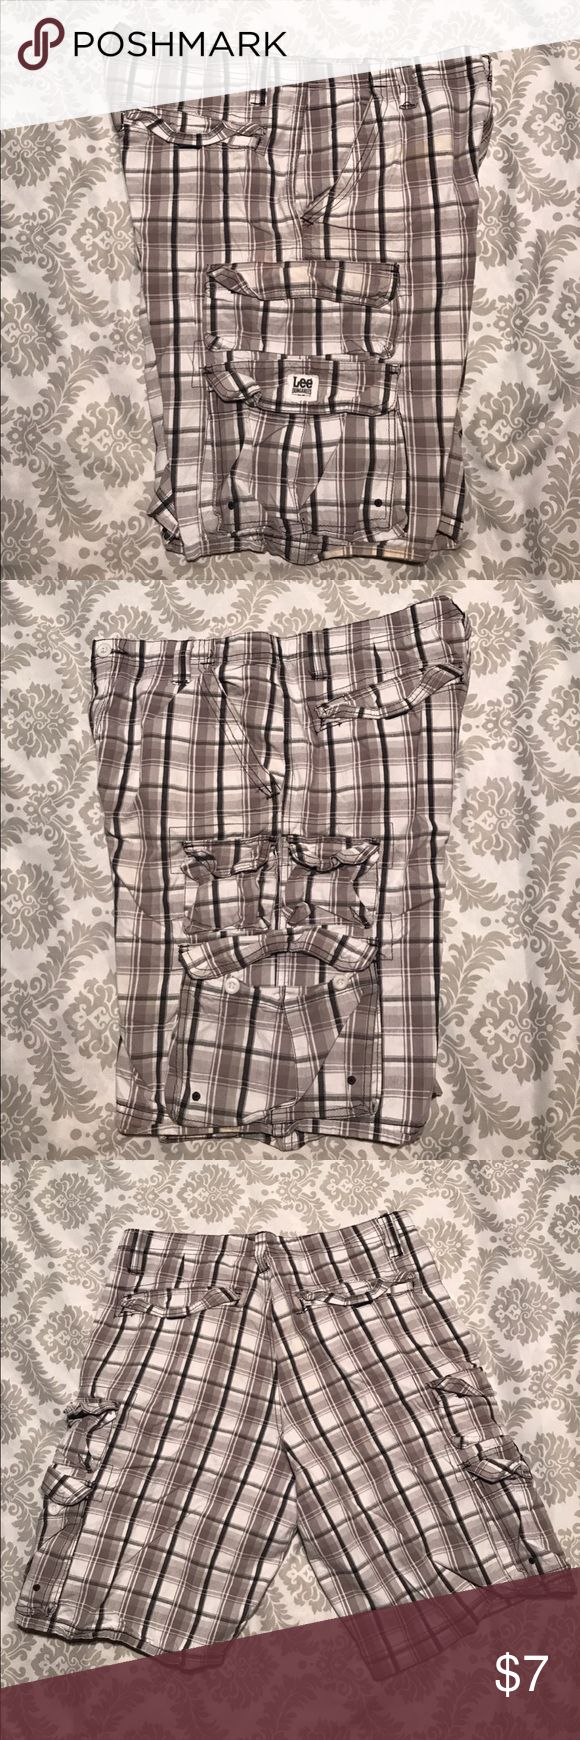 Lee Dungarees men's cargo shorts. Used. Size 32 Lee Dungarees men's cargo shorts. Used. Size 32. 100% Cotton Lee Dungarees Shorts Cargo